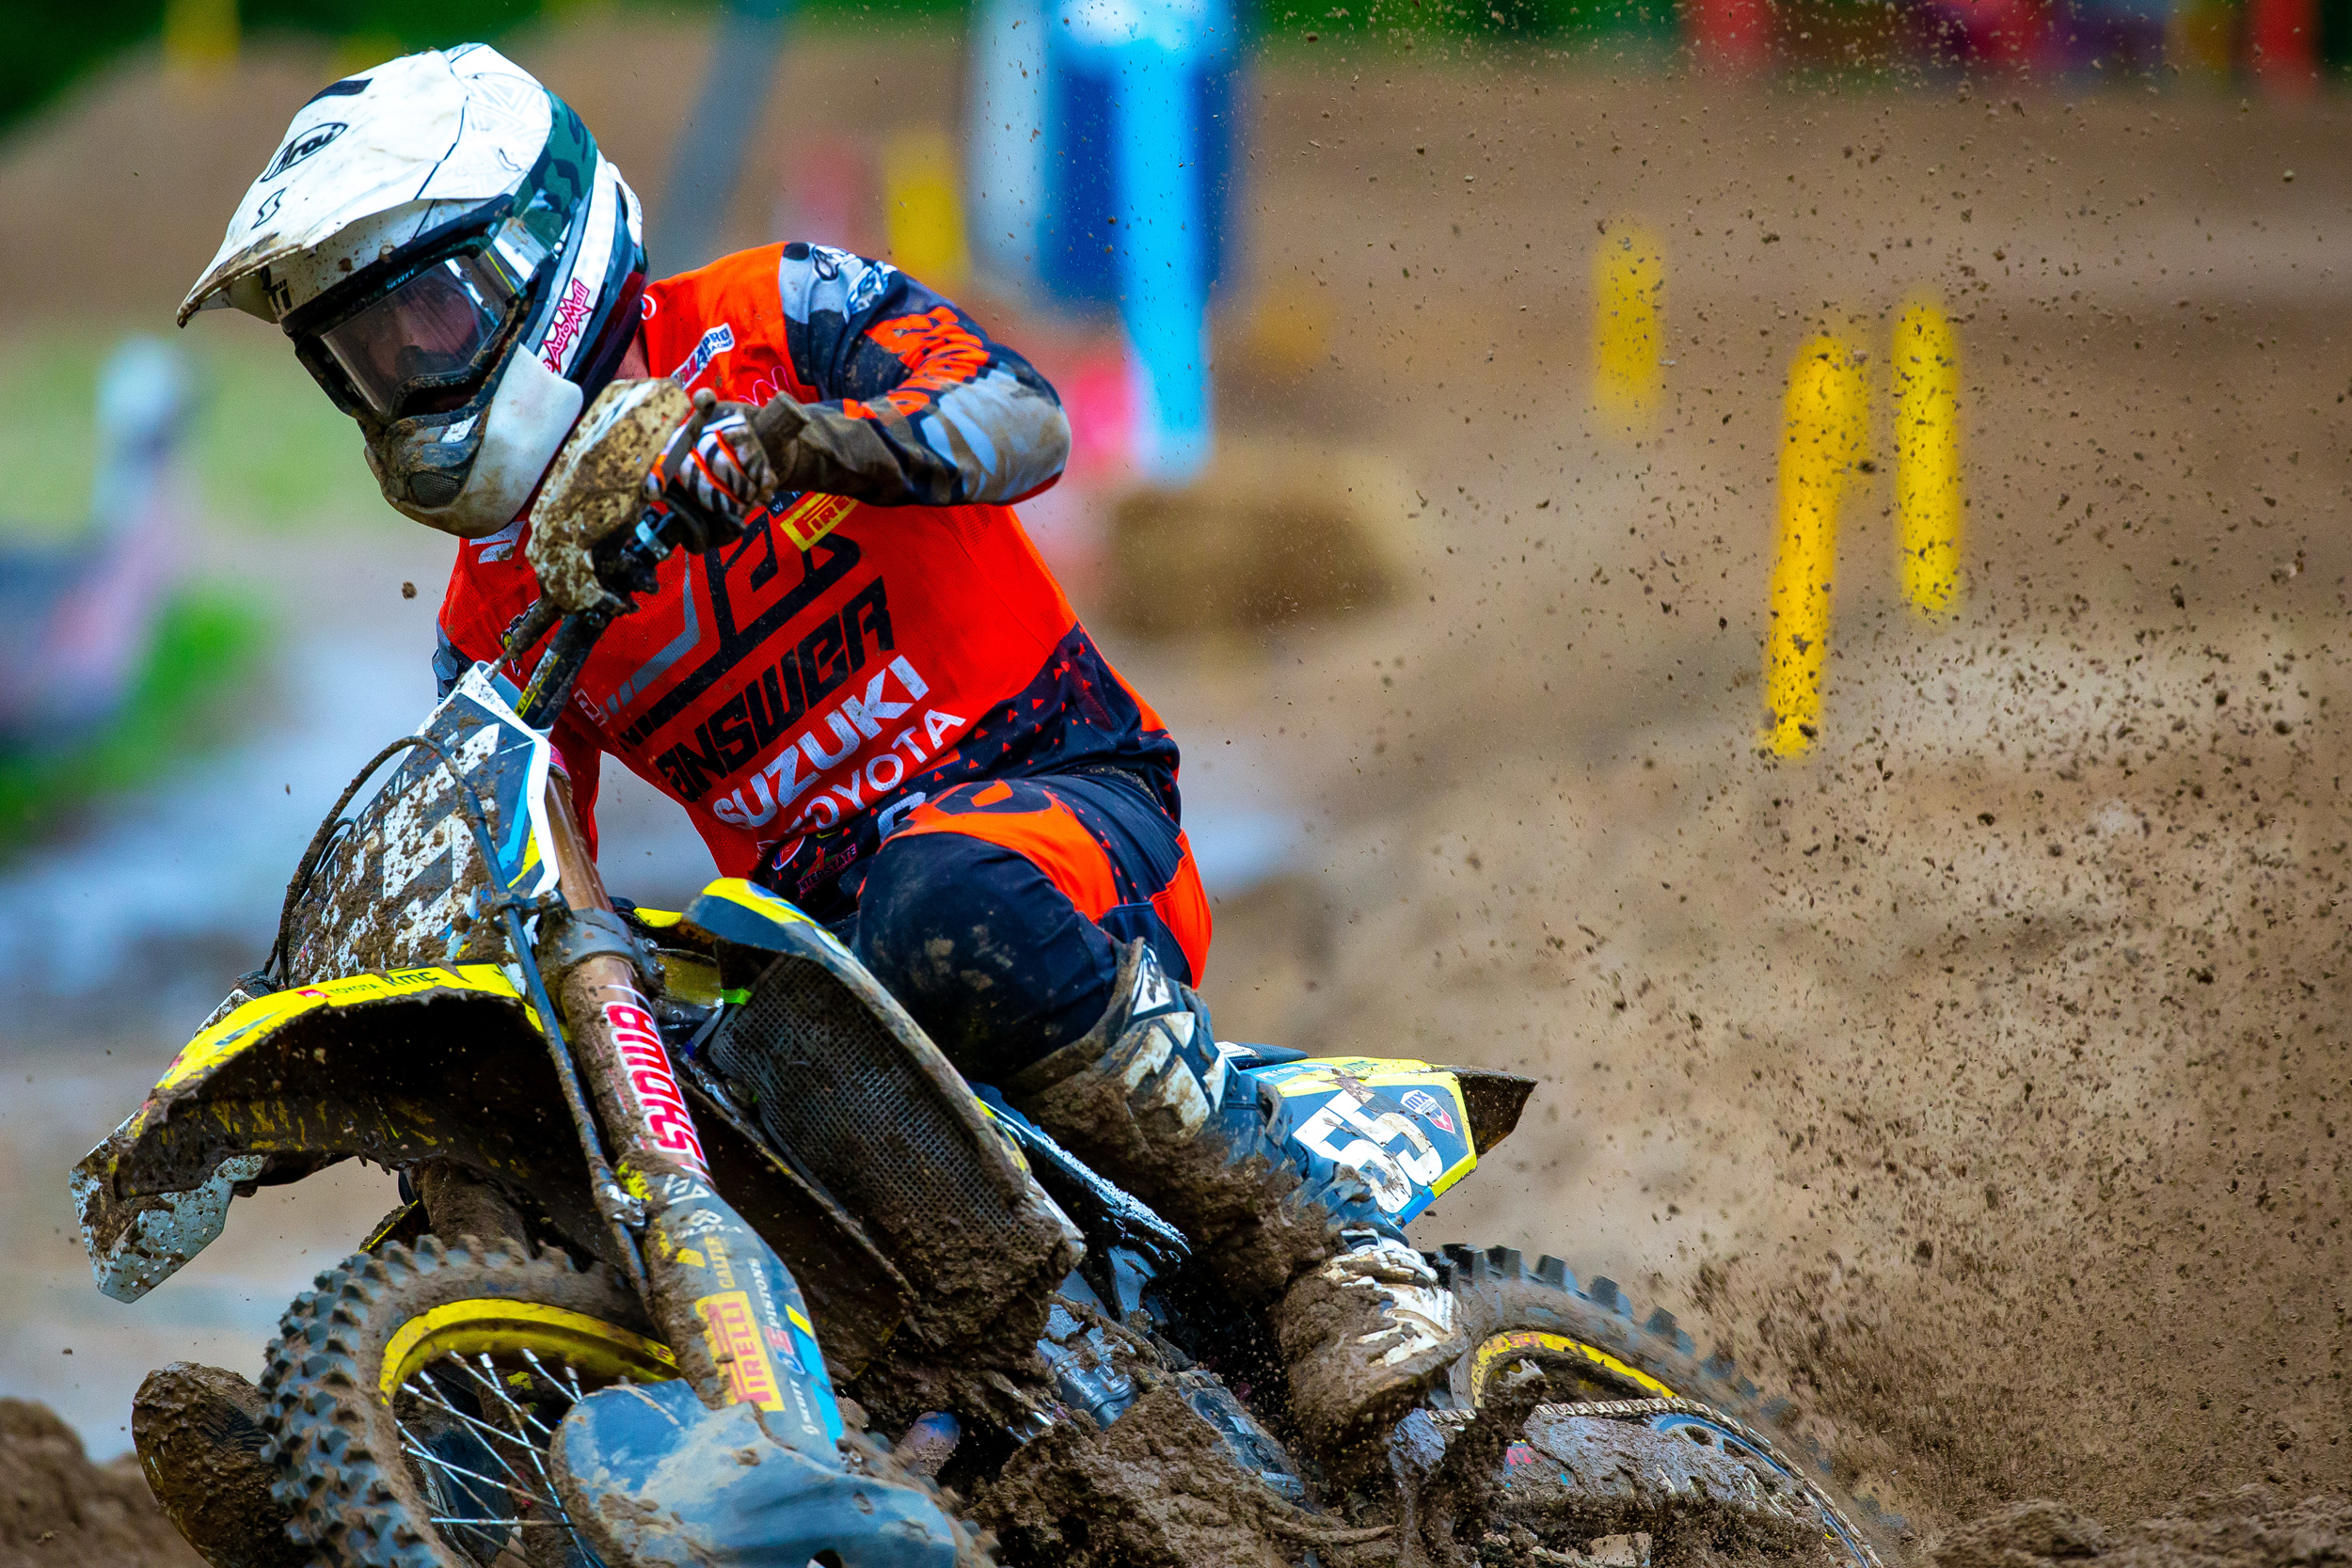 Kyle Peters (#55) pushes through the rough Millville conditions on his RM-Z250